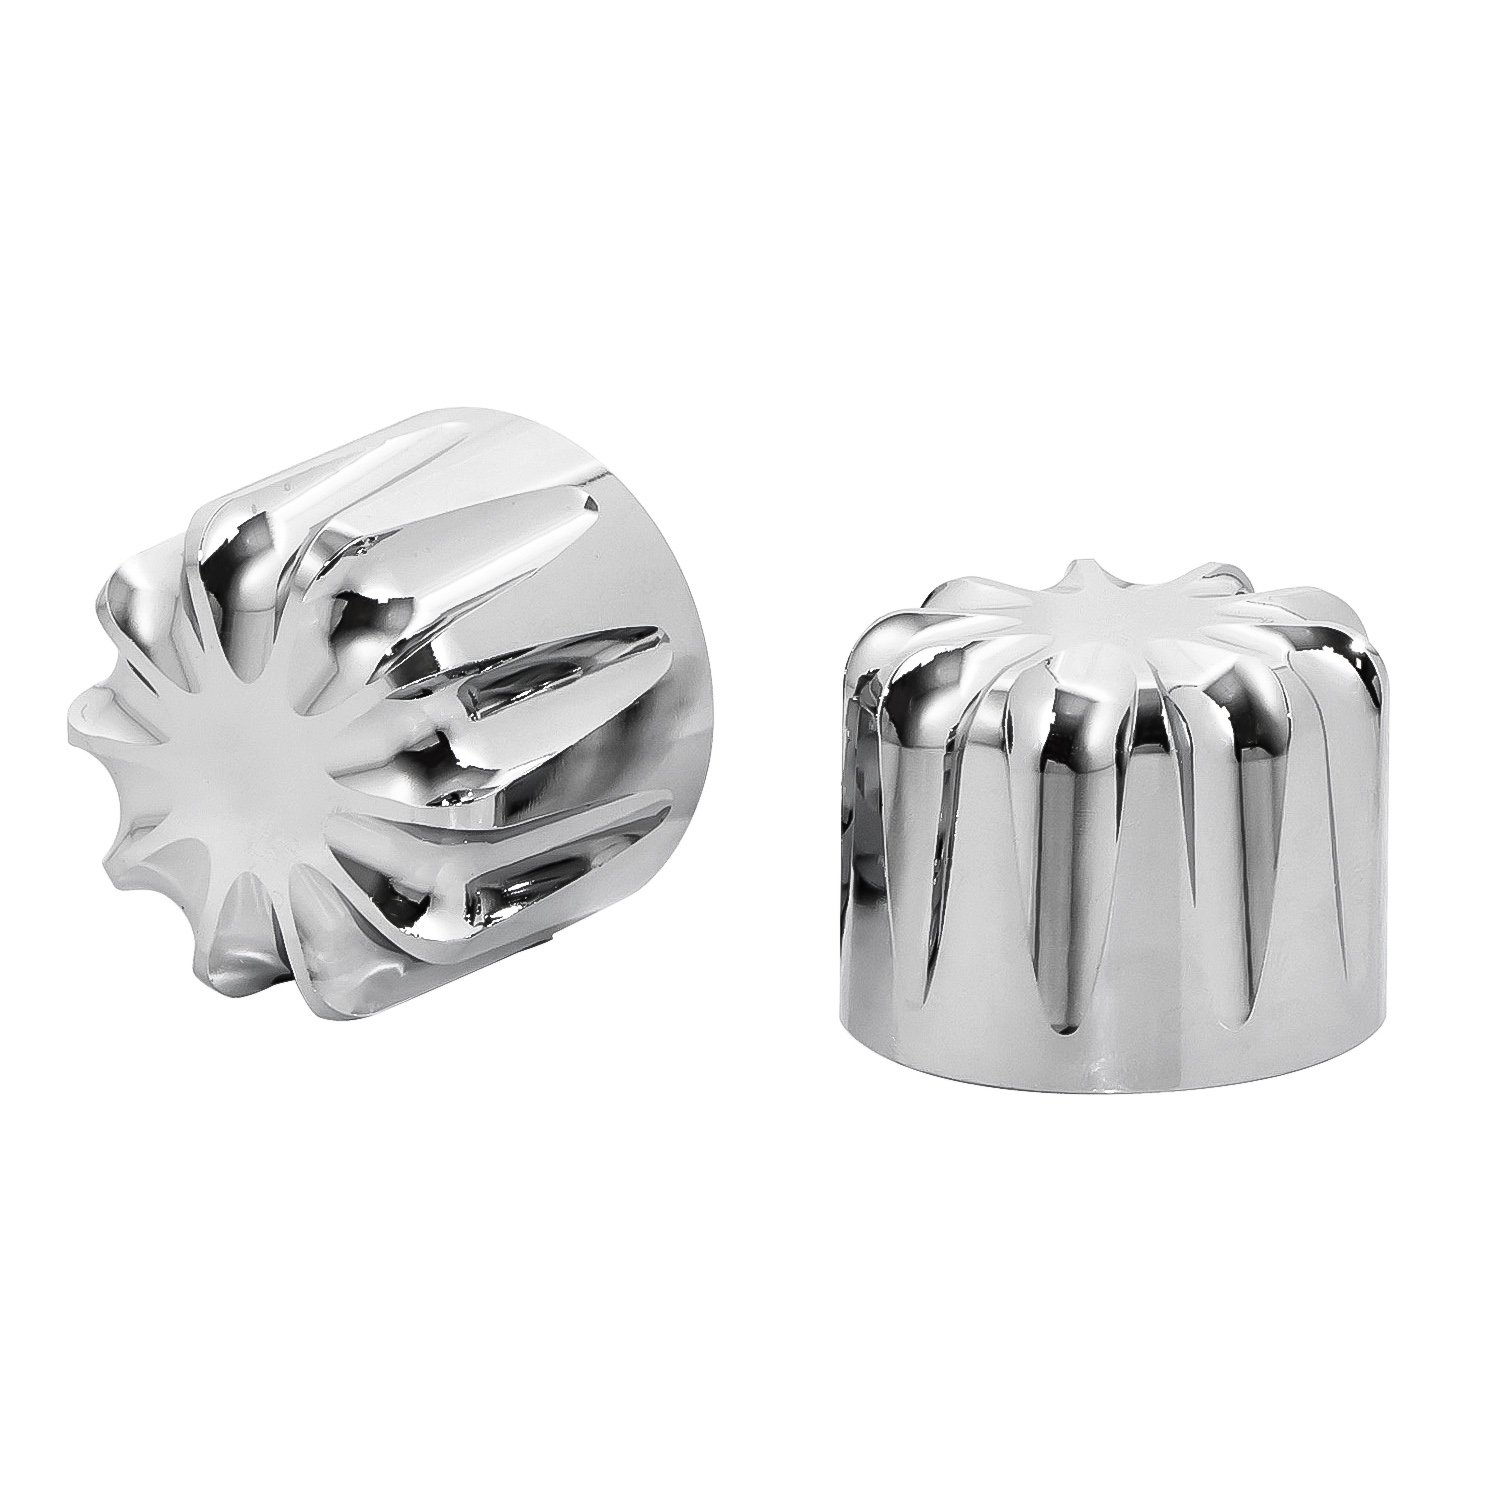 Senkauto Front Axle Cap Nut Cover For Harley Sportster Touring Dyna Touring Softail Electra Street Glide (Chrome 01) by Senkauto (Image #2)